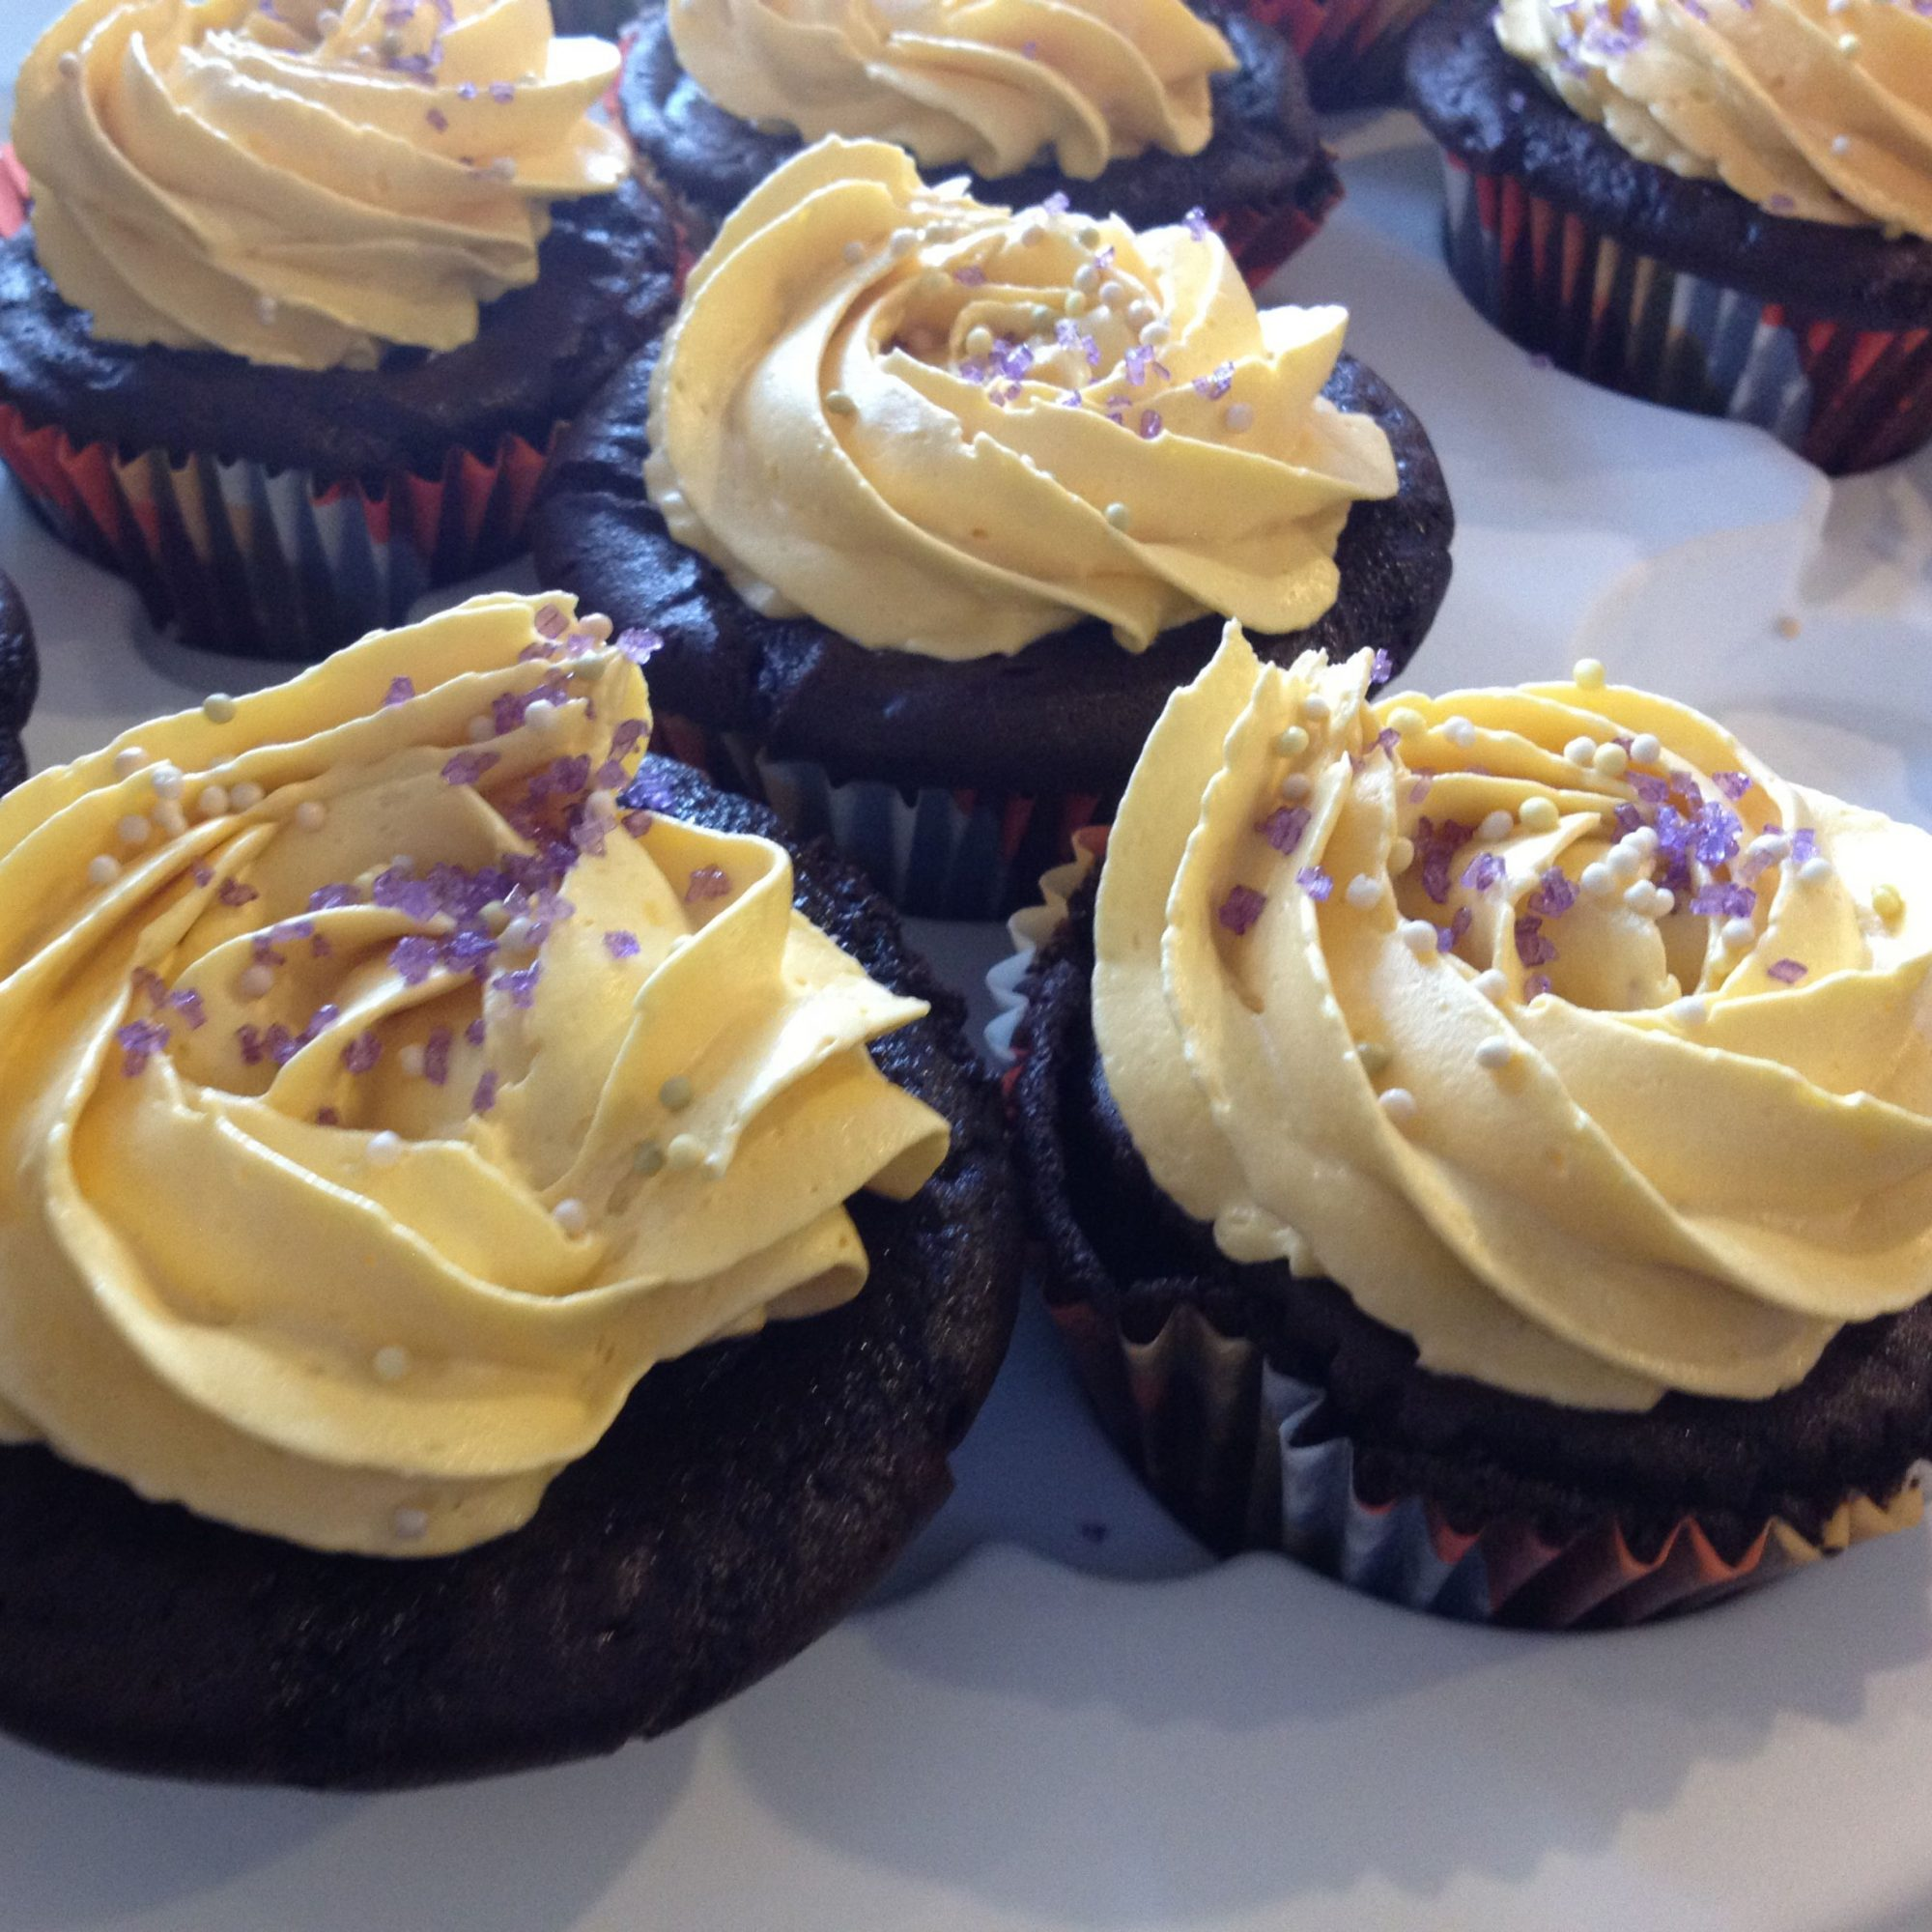 Vegan Chocolate Cupcakes with Vanilla Frosting on a white plate